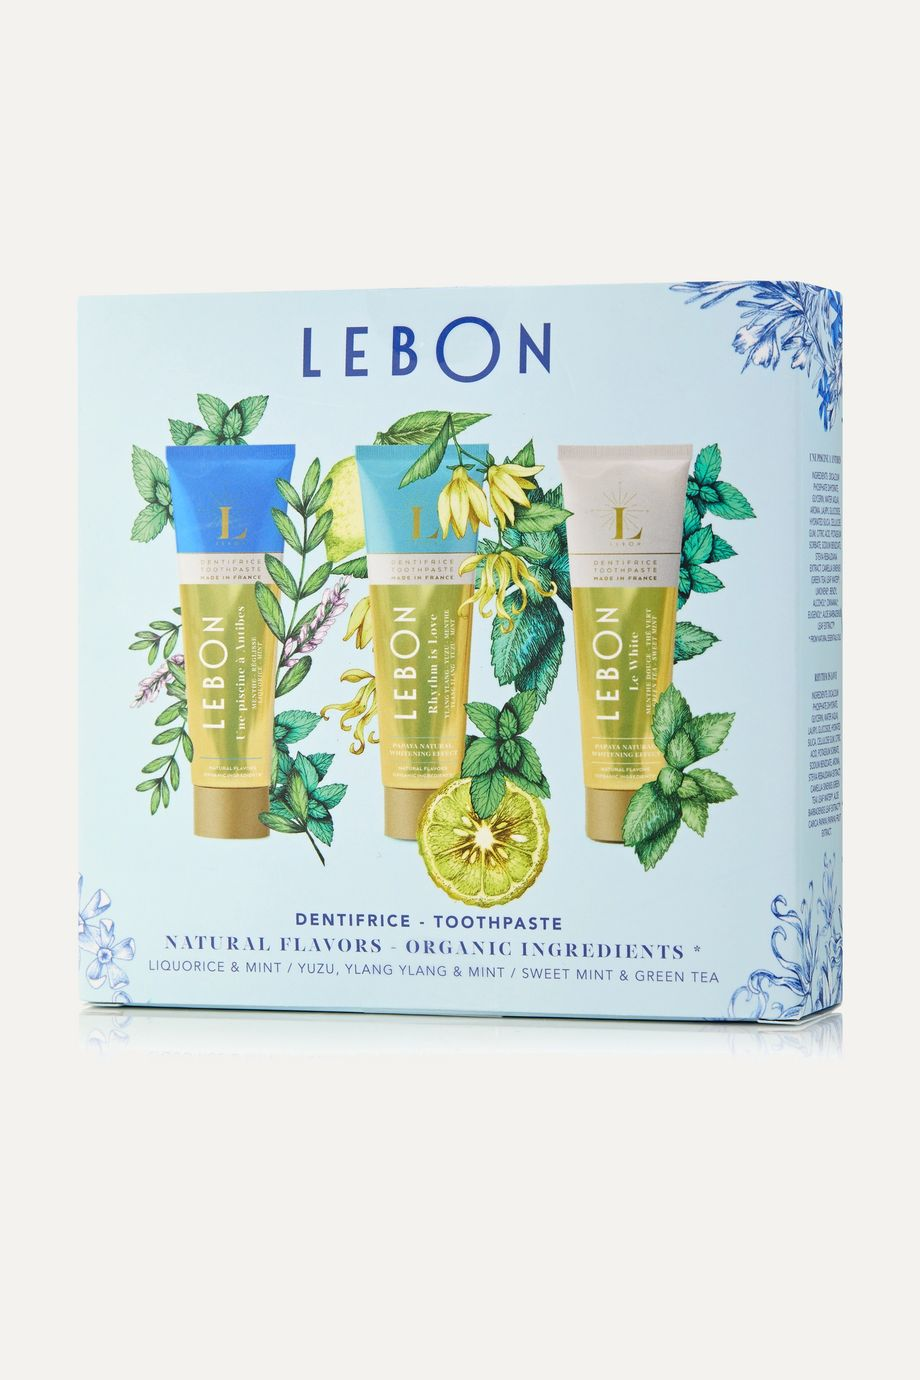 LEBON Blue Gift Set: Le White, Rhythm is Love and Une Piscine à Antibes Toothpaste, 3 x 25ml